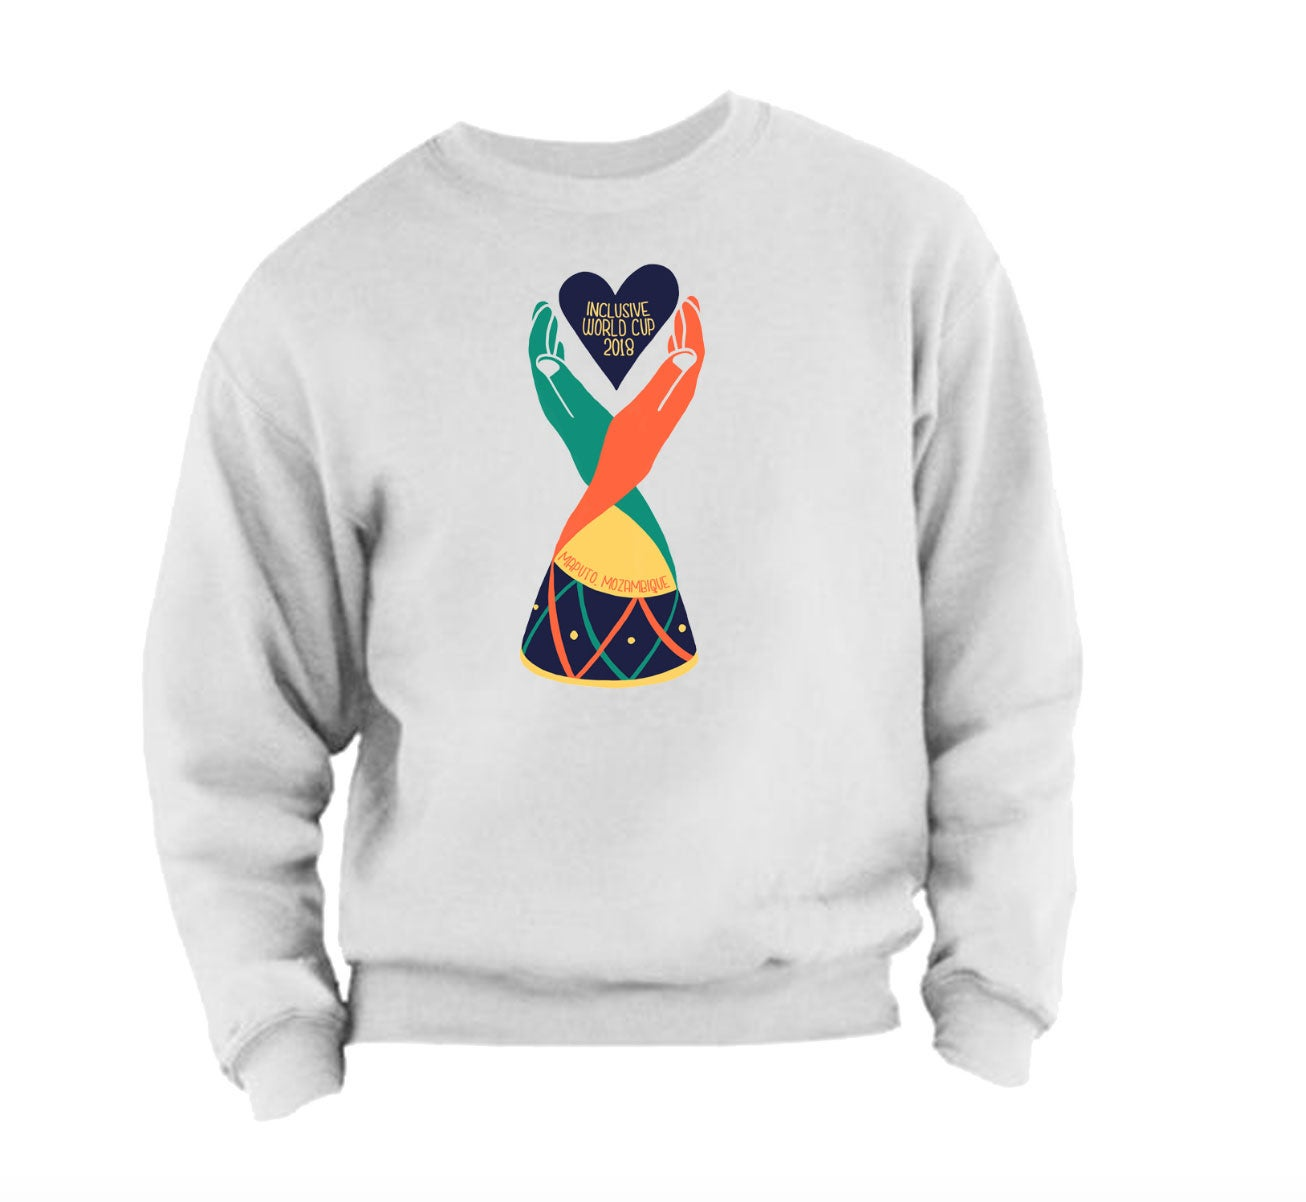 Image of Inclusive World Cup Sweater